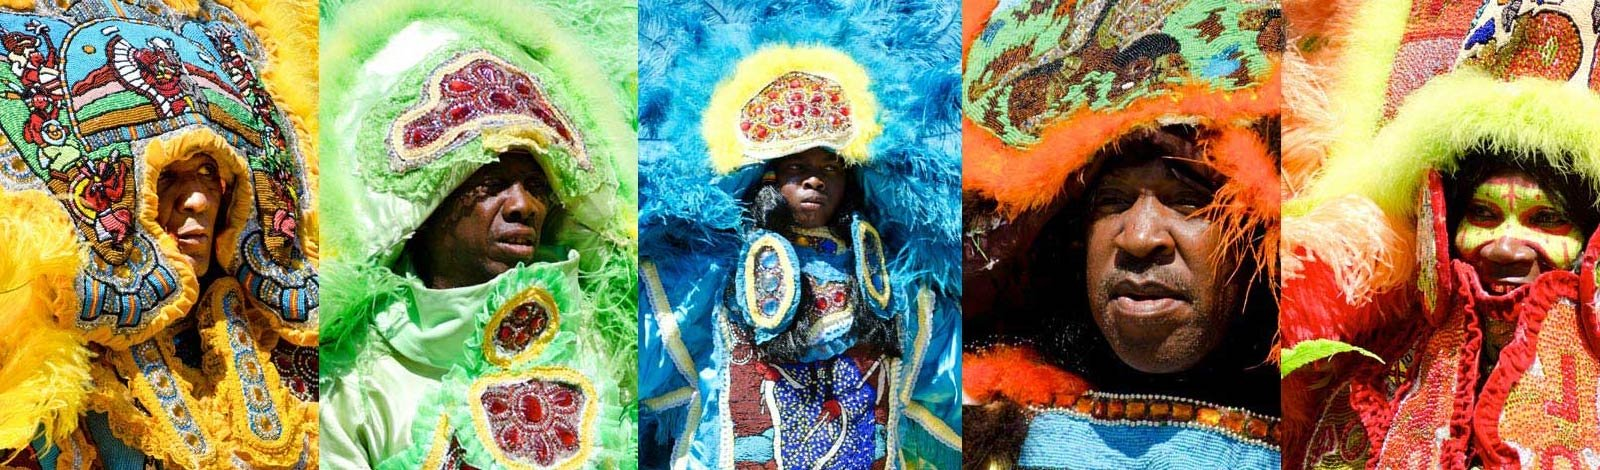 Mardi Gras Indians History and Tradition | Mardi Gras New